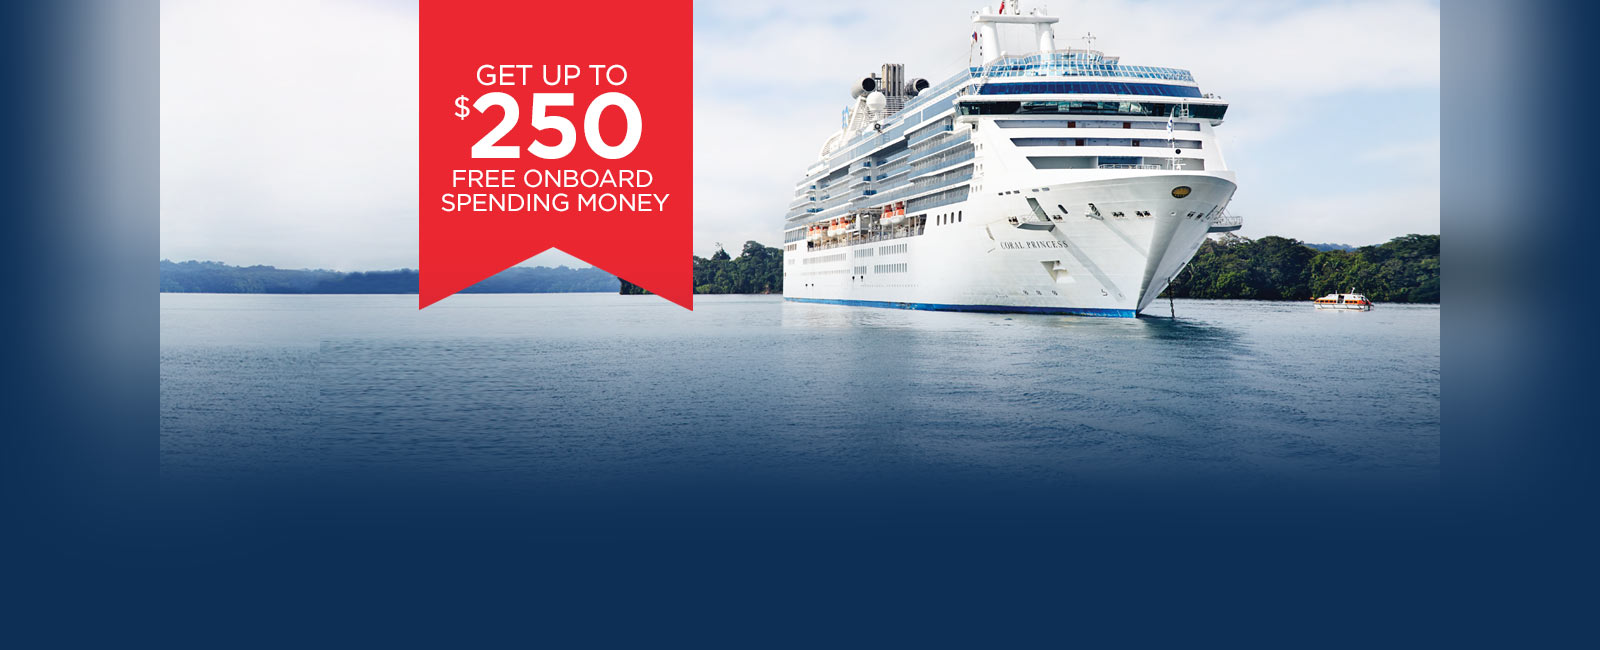 """Get Up to $250 free onboard spending money"" with ship sailing"